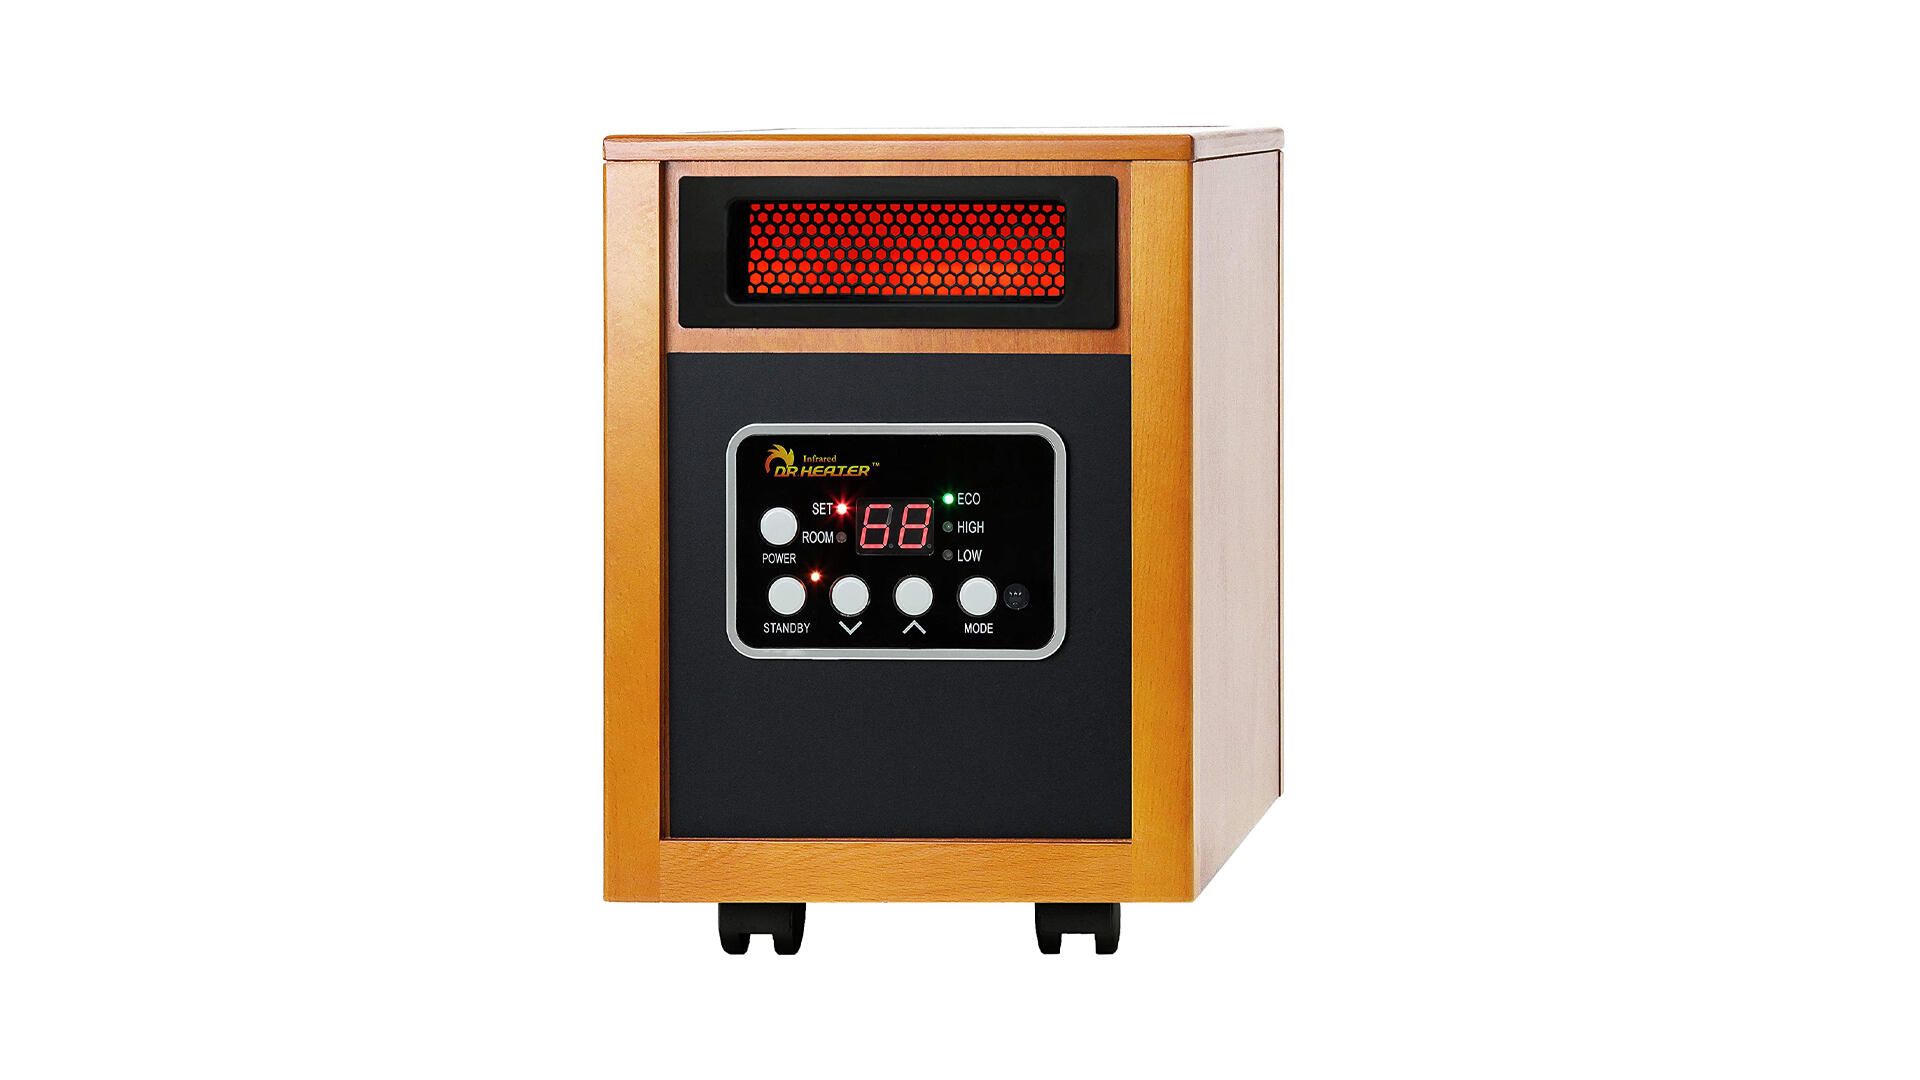 dr infrared dr 968 | Best garage heaters for 2021 | The Paradise